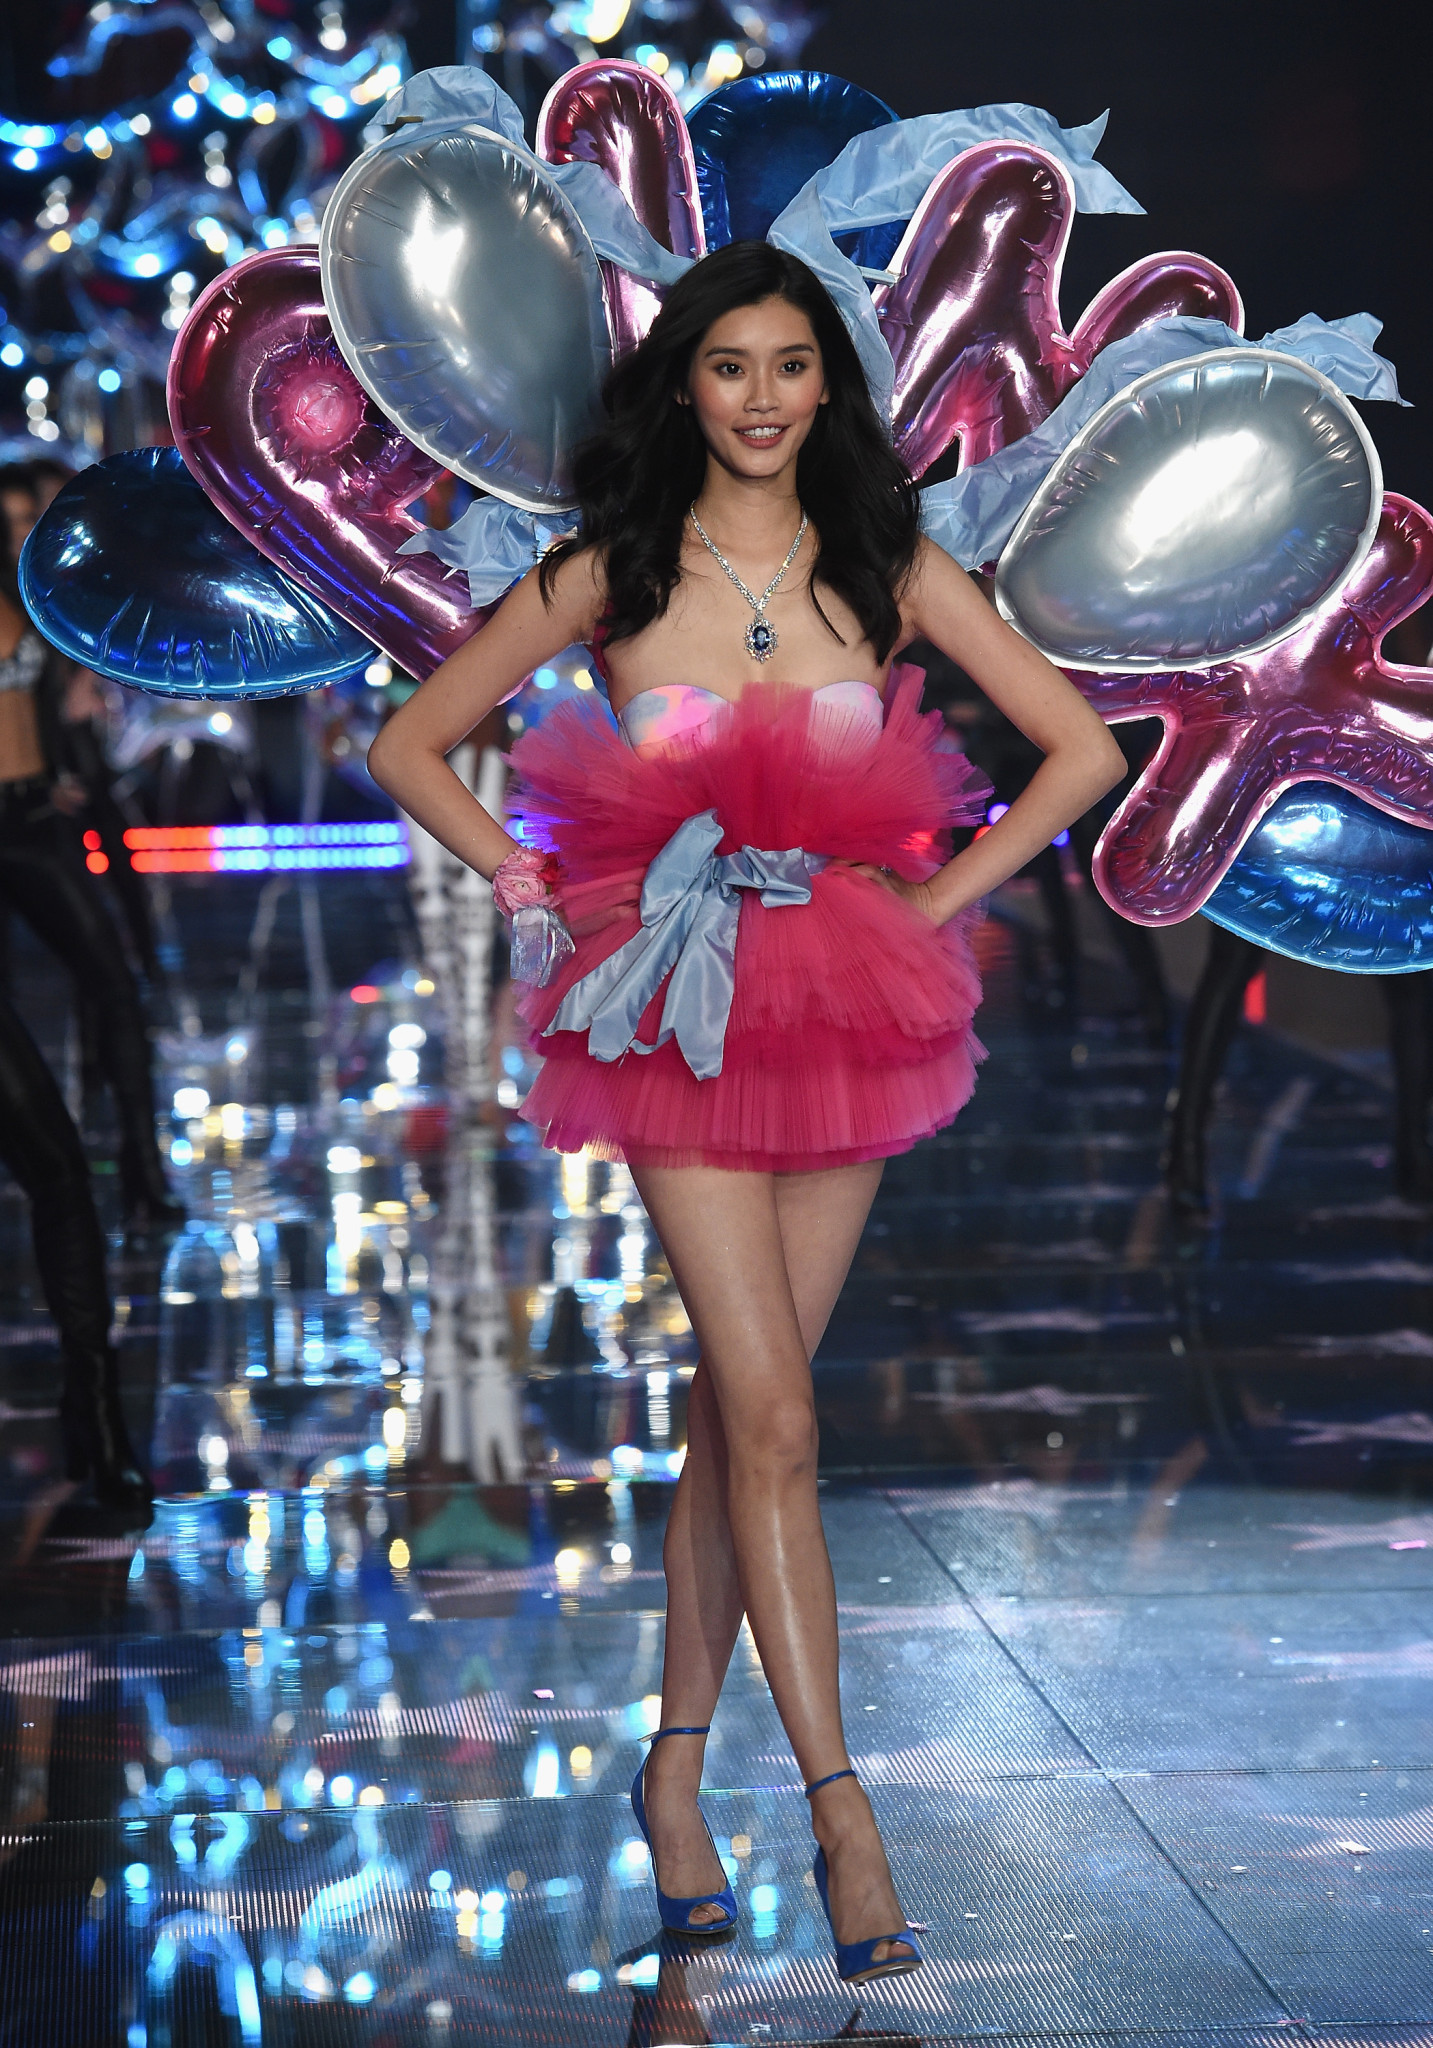 NEW YORK, NY - NOVEMBER 10: Model Ming Xi from China walks the runway during the 2015 Victoria's Secret Fashion Show at Lexington Avenue Armory on November 10, 2015 in New York City. (Photo by Dimitrios Kambouris/Getty Images for Victoria's Secret) *** Local Caption *** Ming Xi